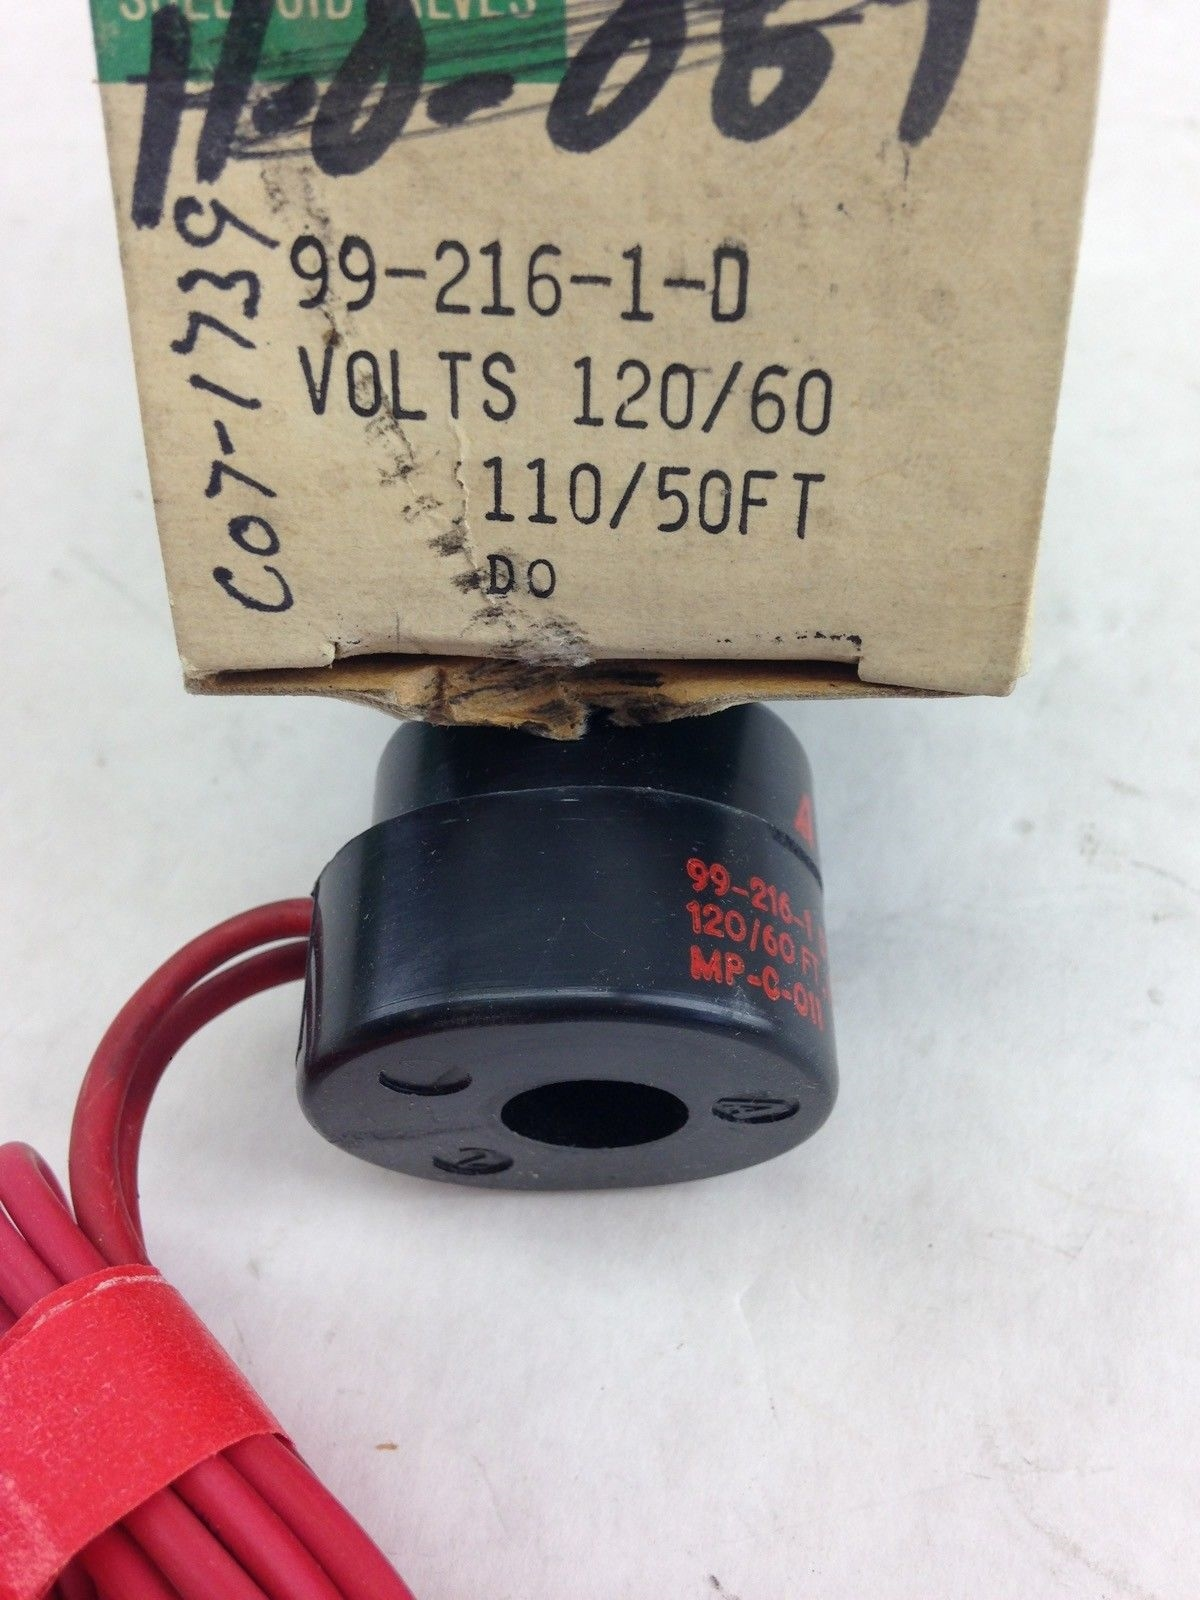 ASCO RED HAT 99-216-1-D SOLENOID VALVE COIL (A828) 2